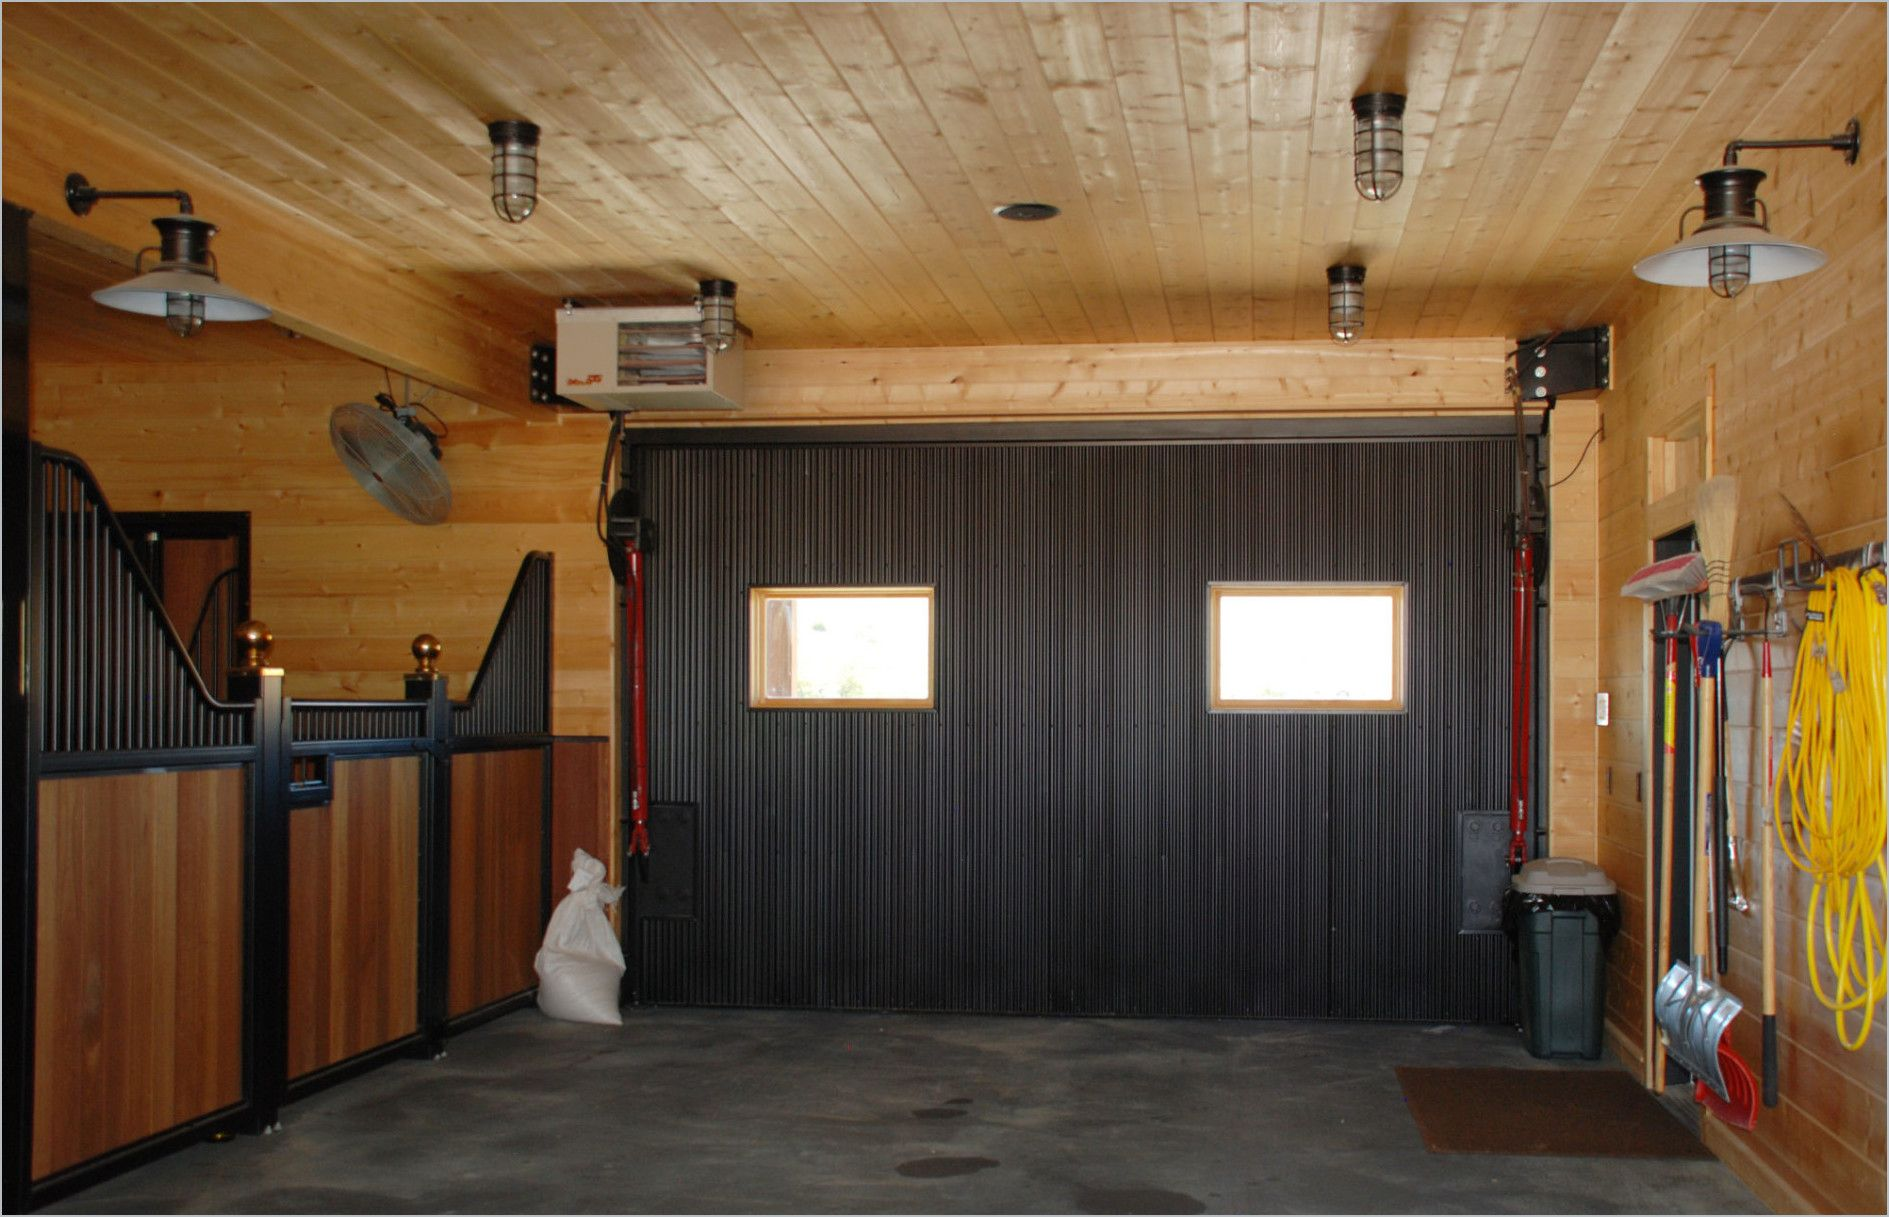 25 Brilliant Garage Wall Ideas Design And Remodel Pictures